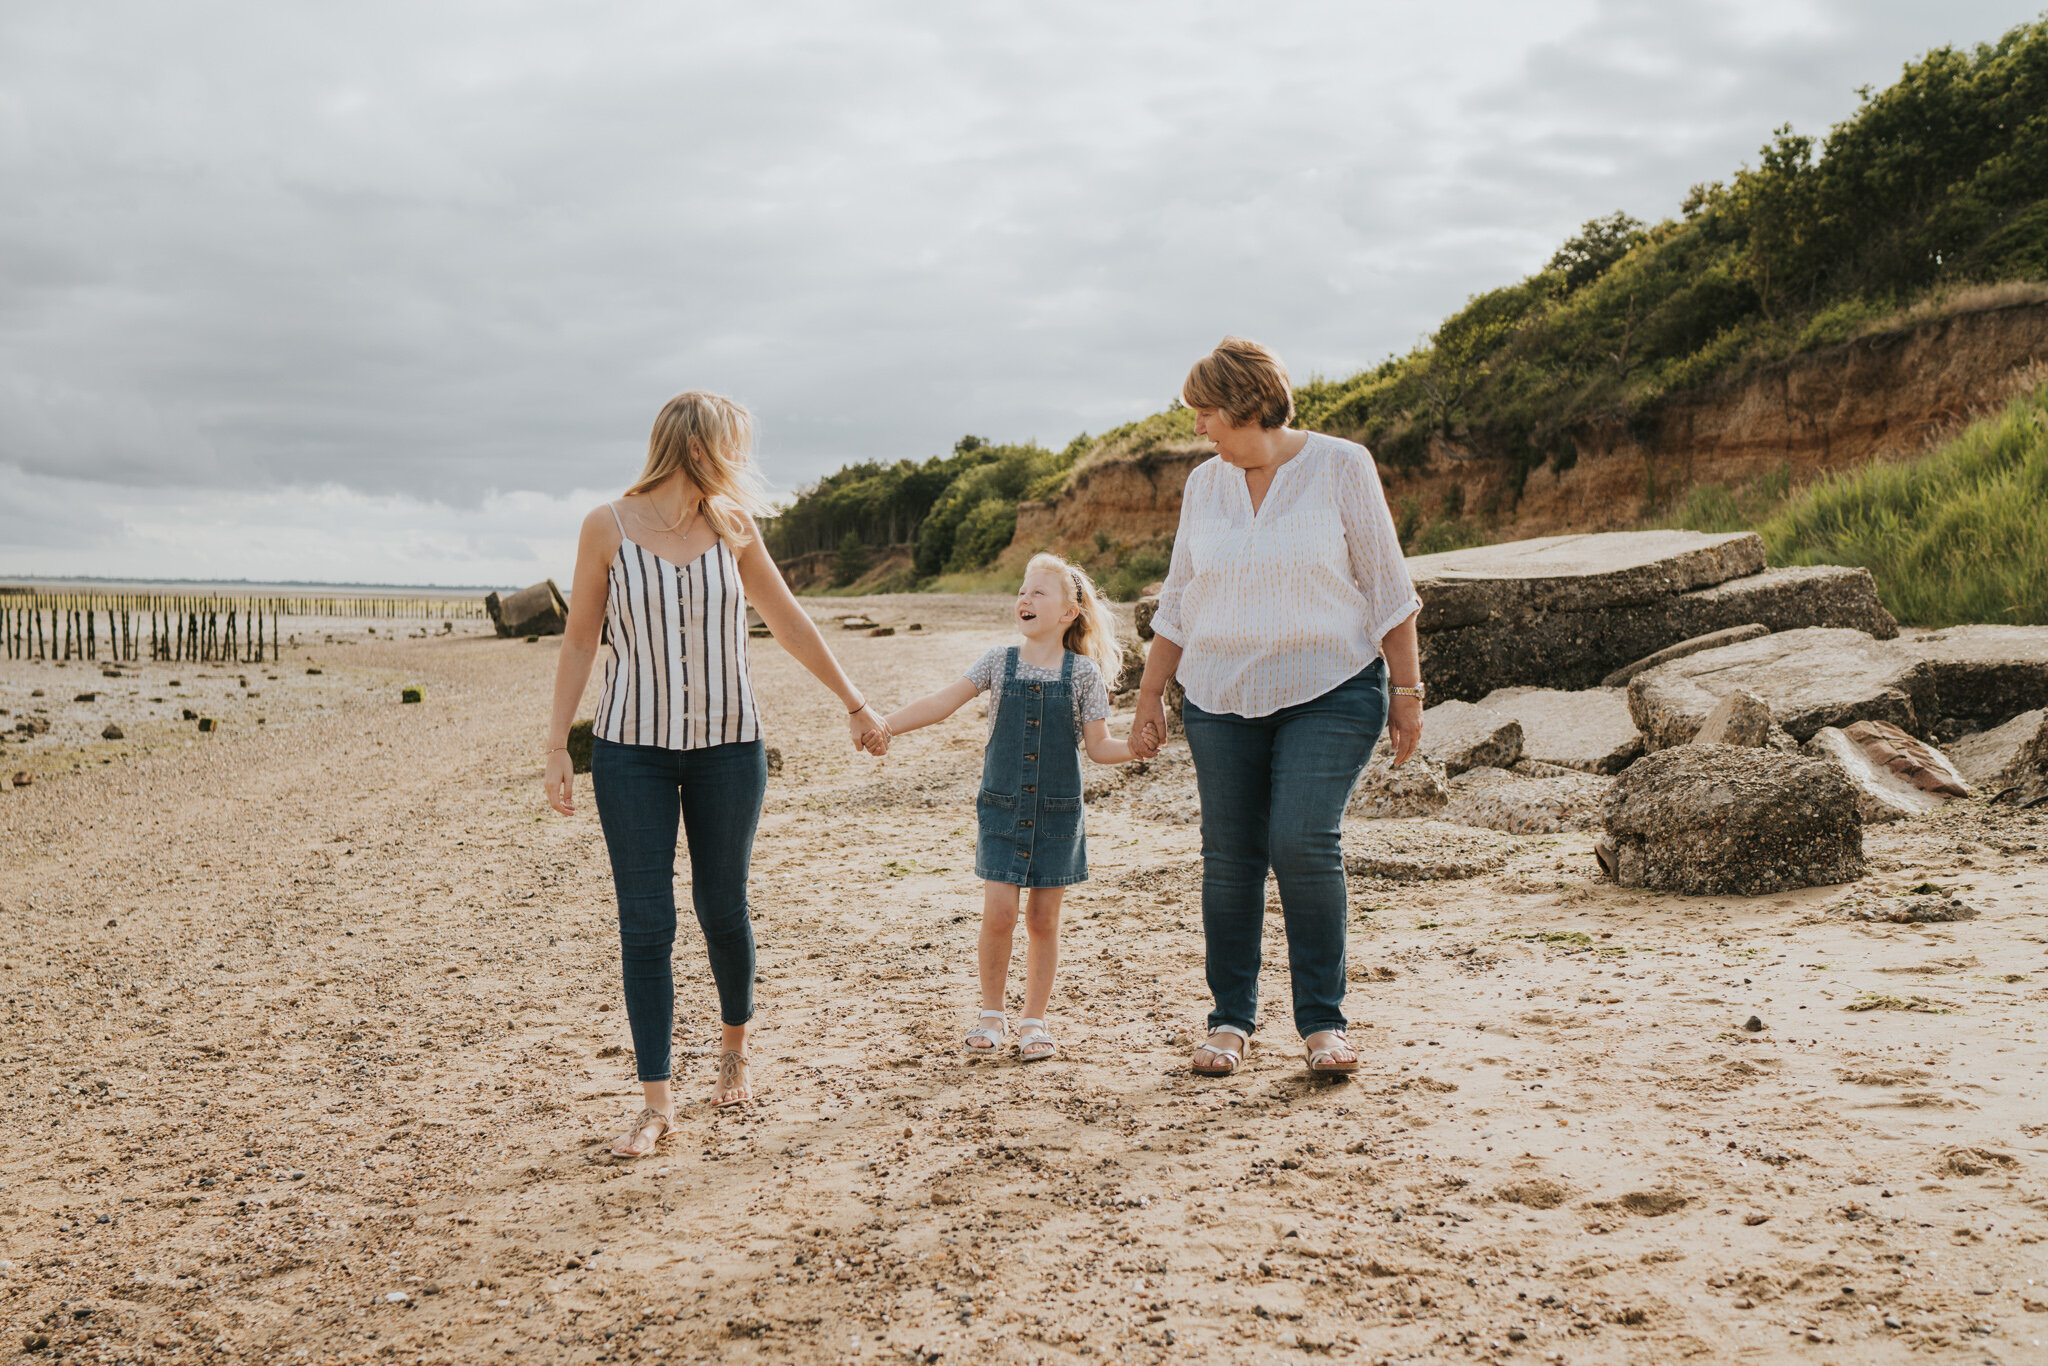 celebratory-beach-family-session-thomson-family-cudmore-grove-east-mersea-grace-elizabeth-colchester-essex-devon-suffolk-and-norfolk-alternative-wedding-and-family-photographer (13 of 53).jpg